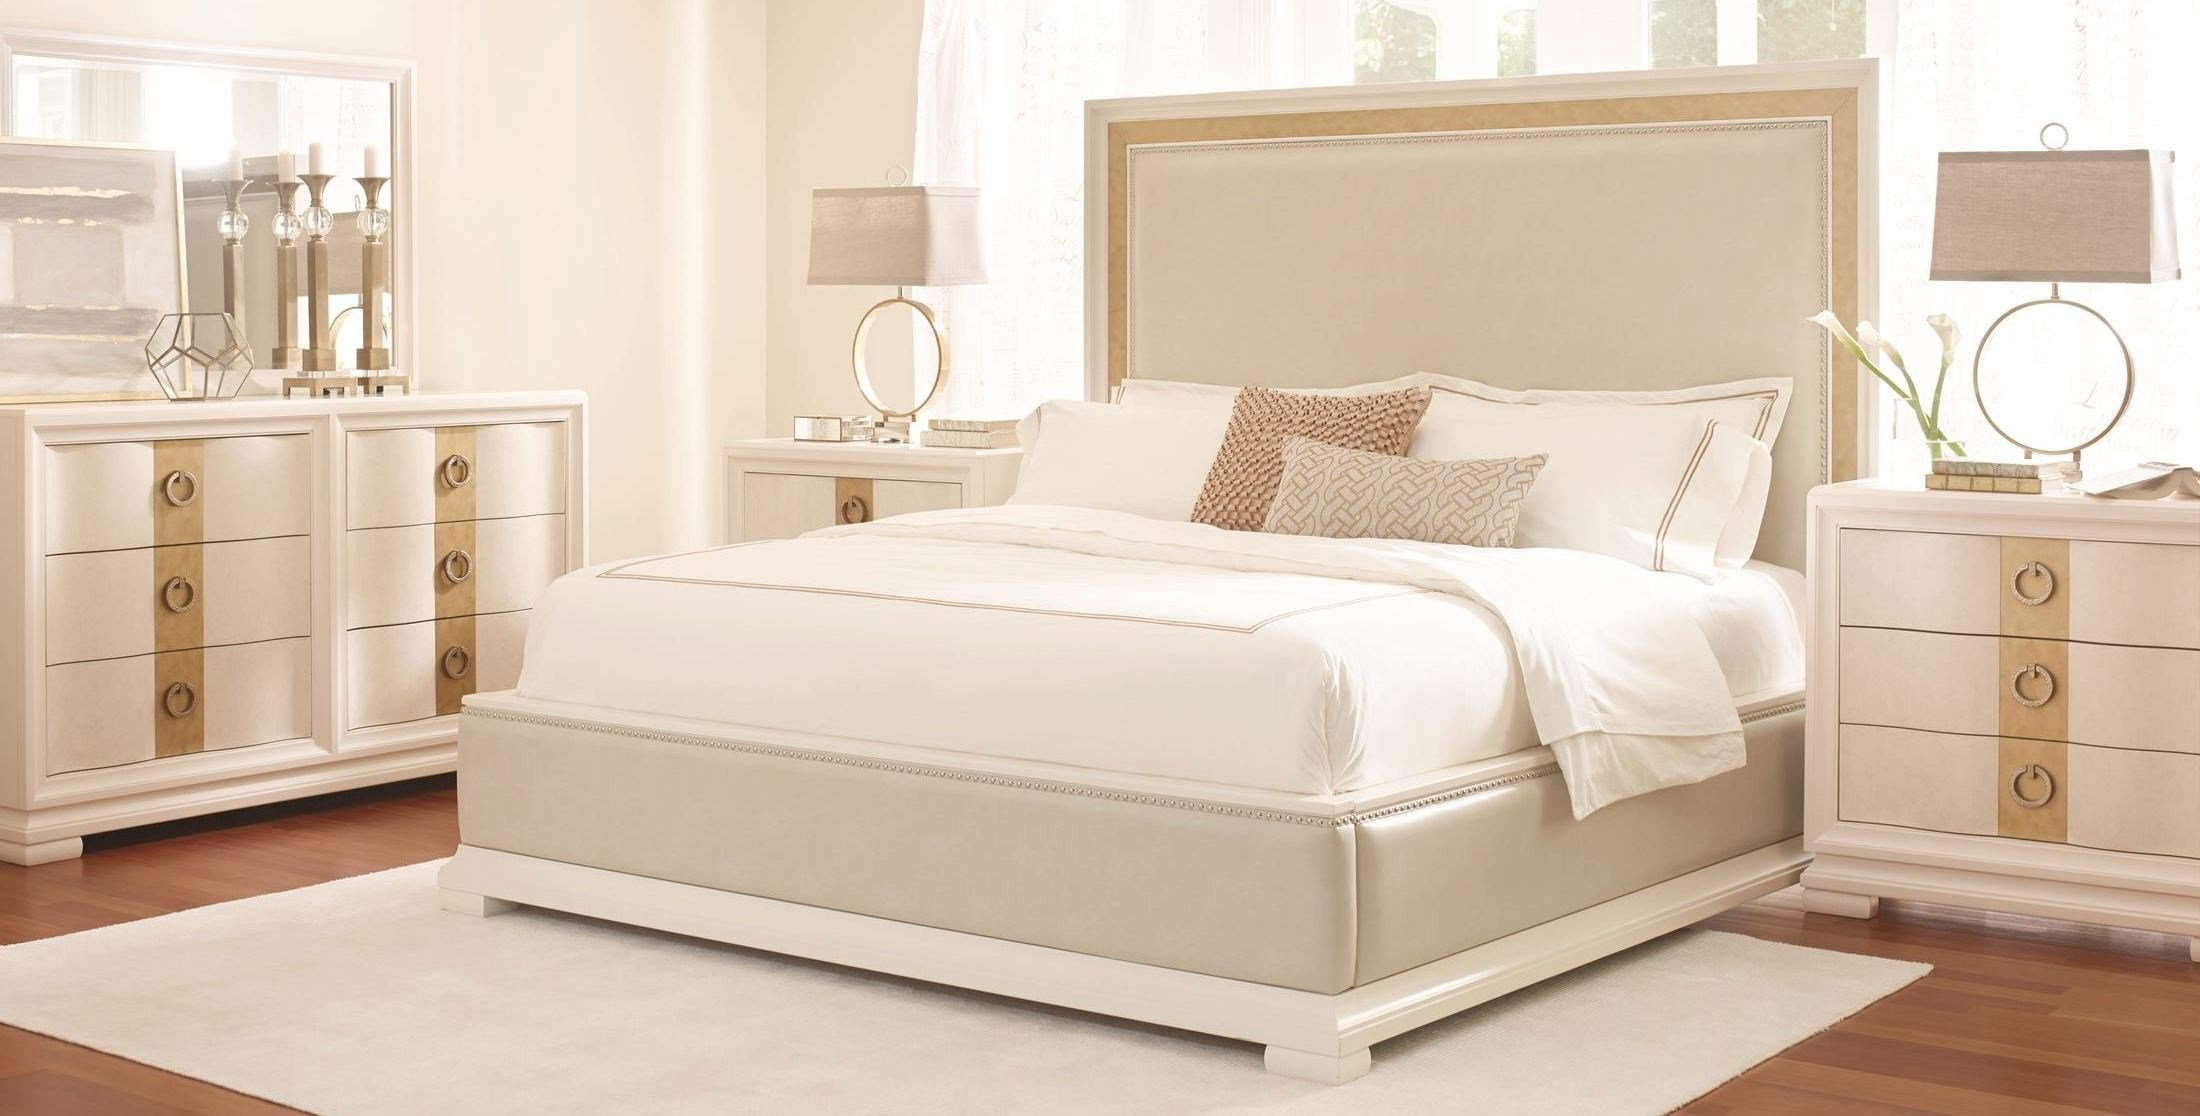 Best Tower Suite Pearl Upholstered Platform Bedroom Set From With Pictures